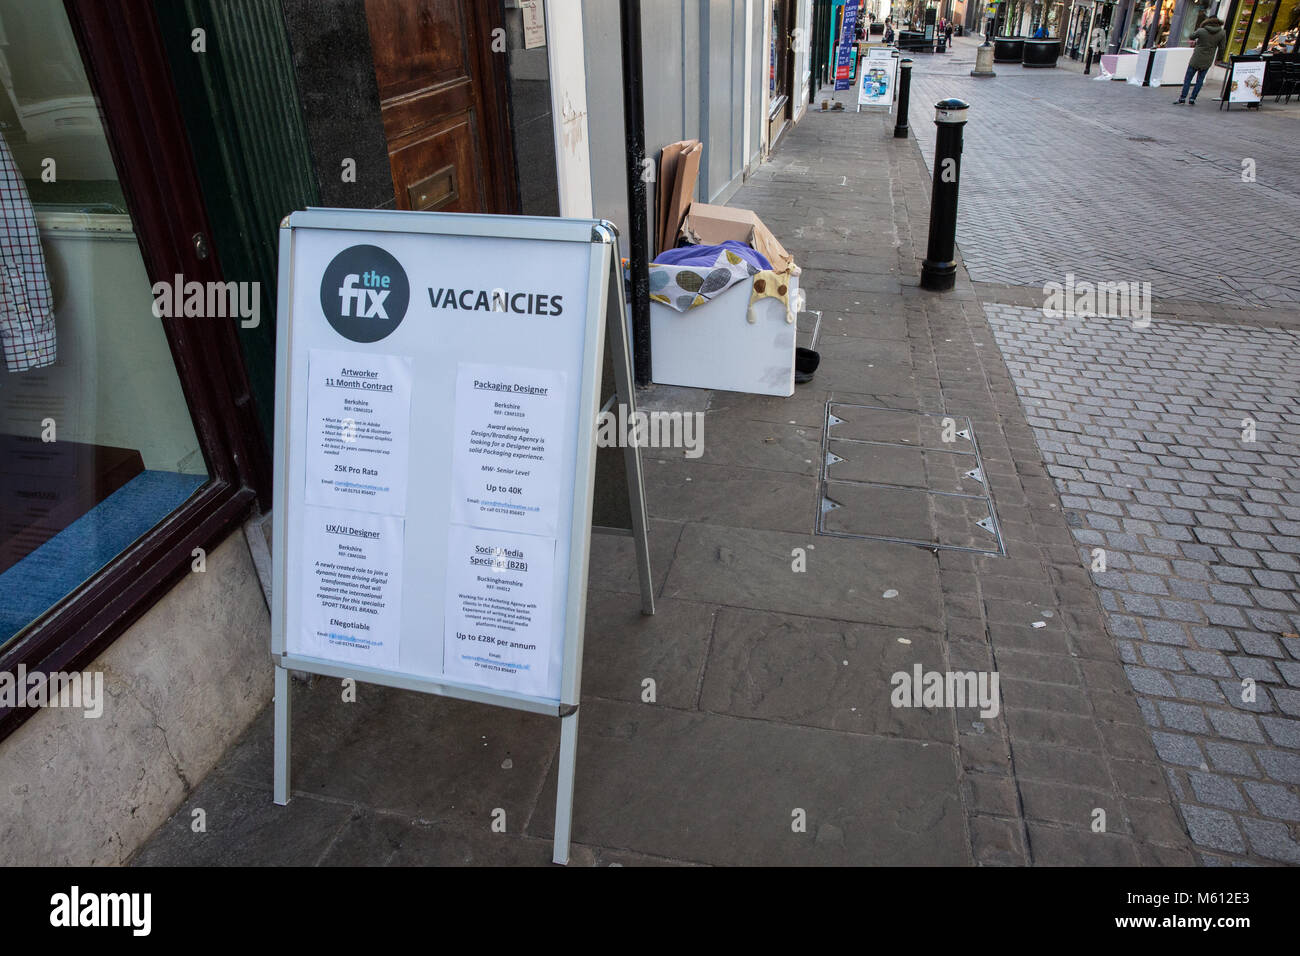 Windsor, UK. 27th February, 2018. A homeless person sleeps in the High Street after a night of below-freezing temperatures. - Stock Image